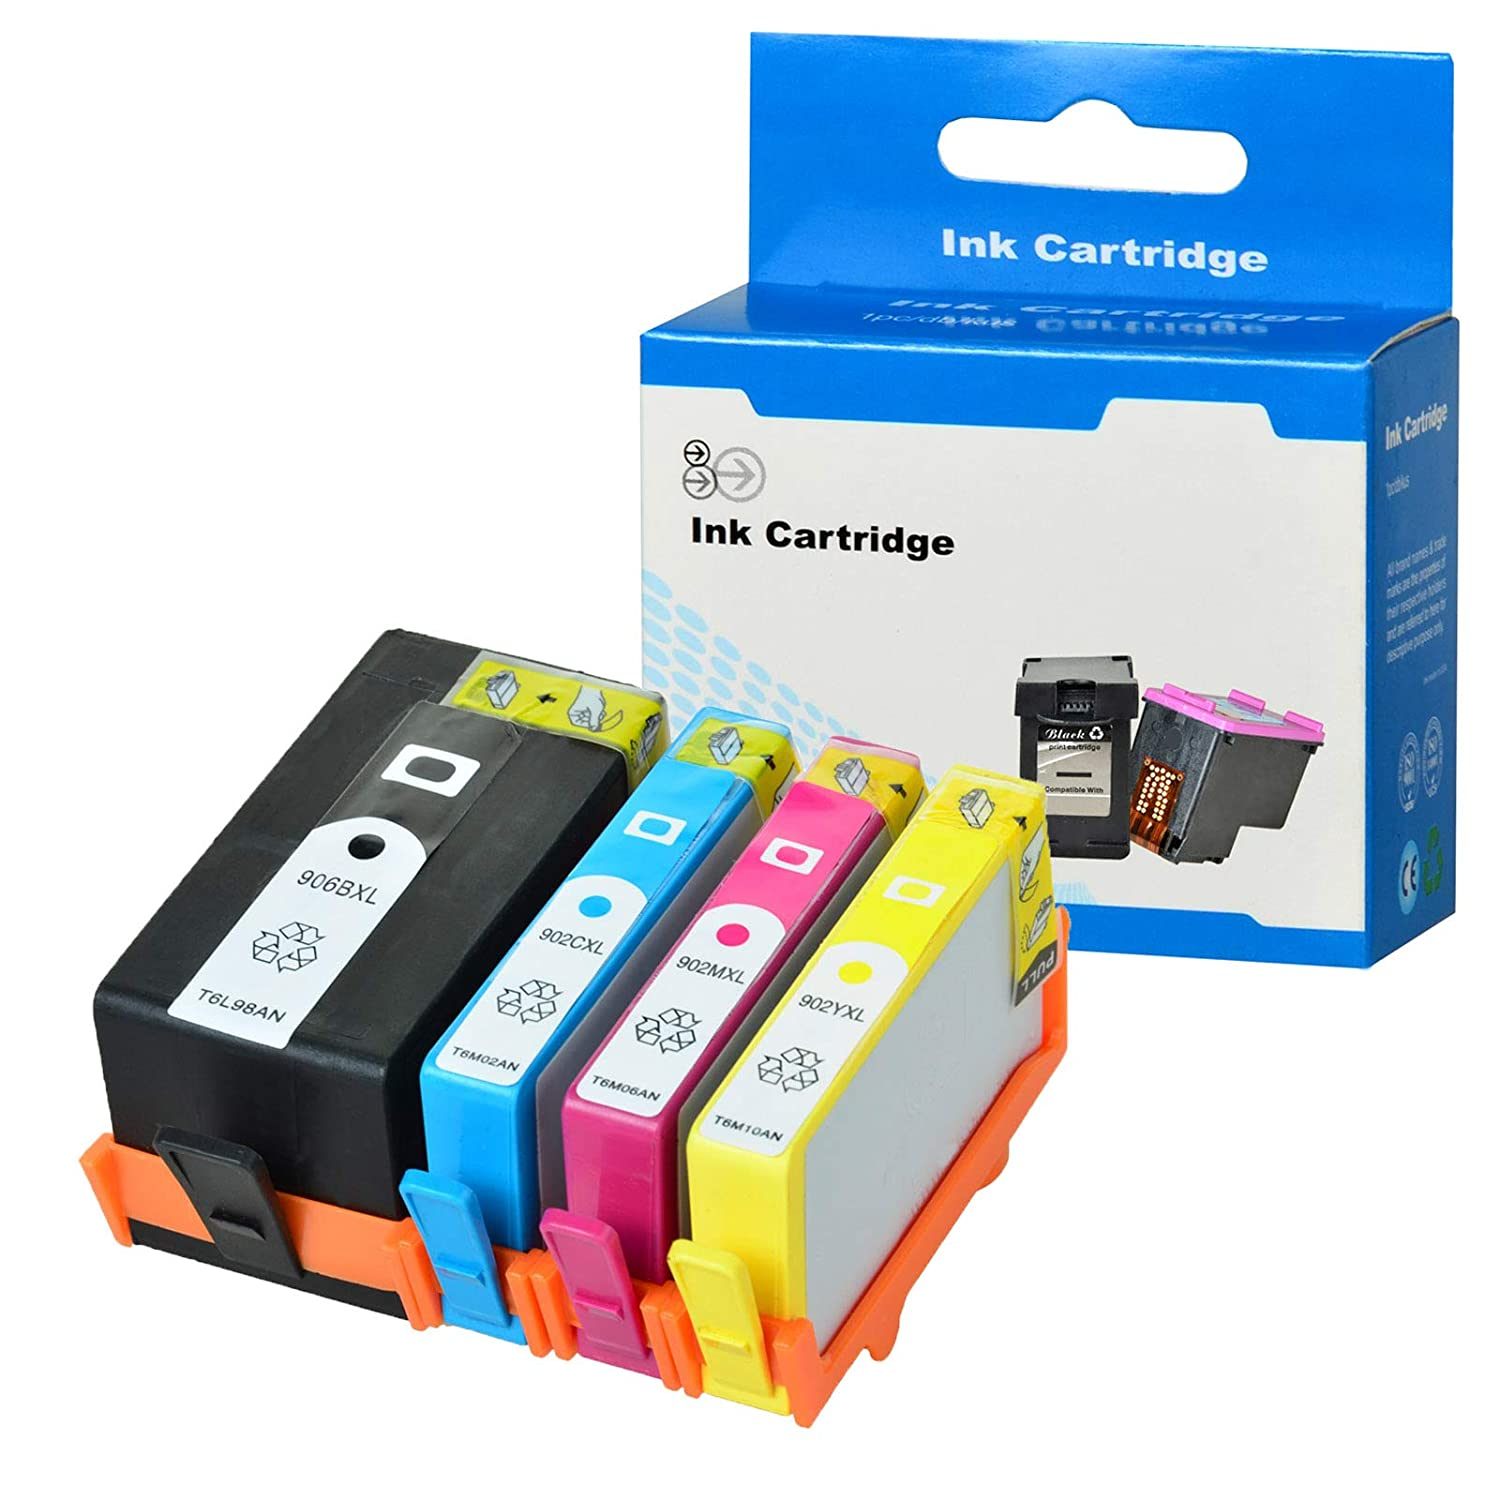 1 Large Black,1 Cyan,1 Yellow,1 Magenta,4-Pack SuperInk Remanufactured Ink Cartridge Compatible for HP 902 902XL 902 XL 906XL with Chip use in OfficeJet Pro 6960 6968 6970 6974 6975 6978 Printer